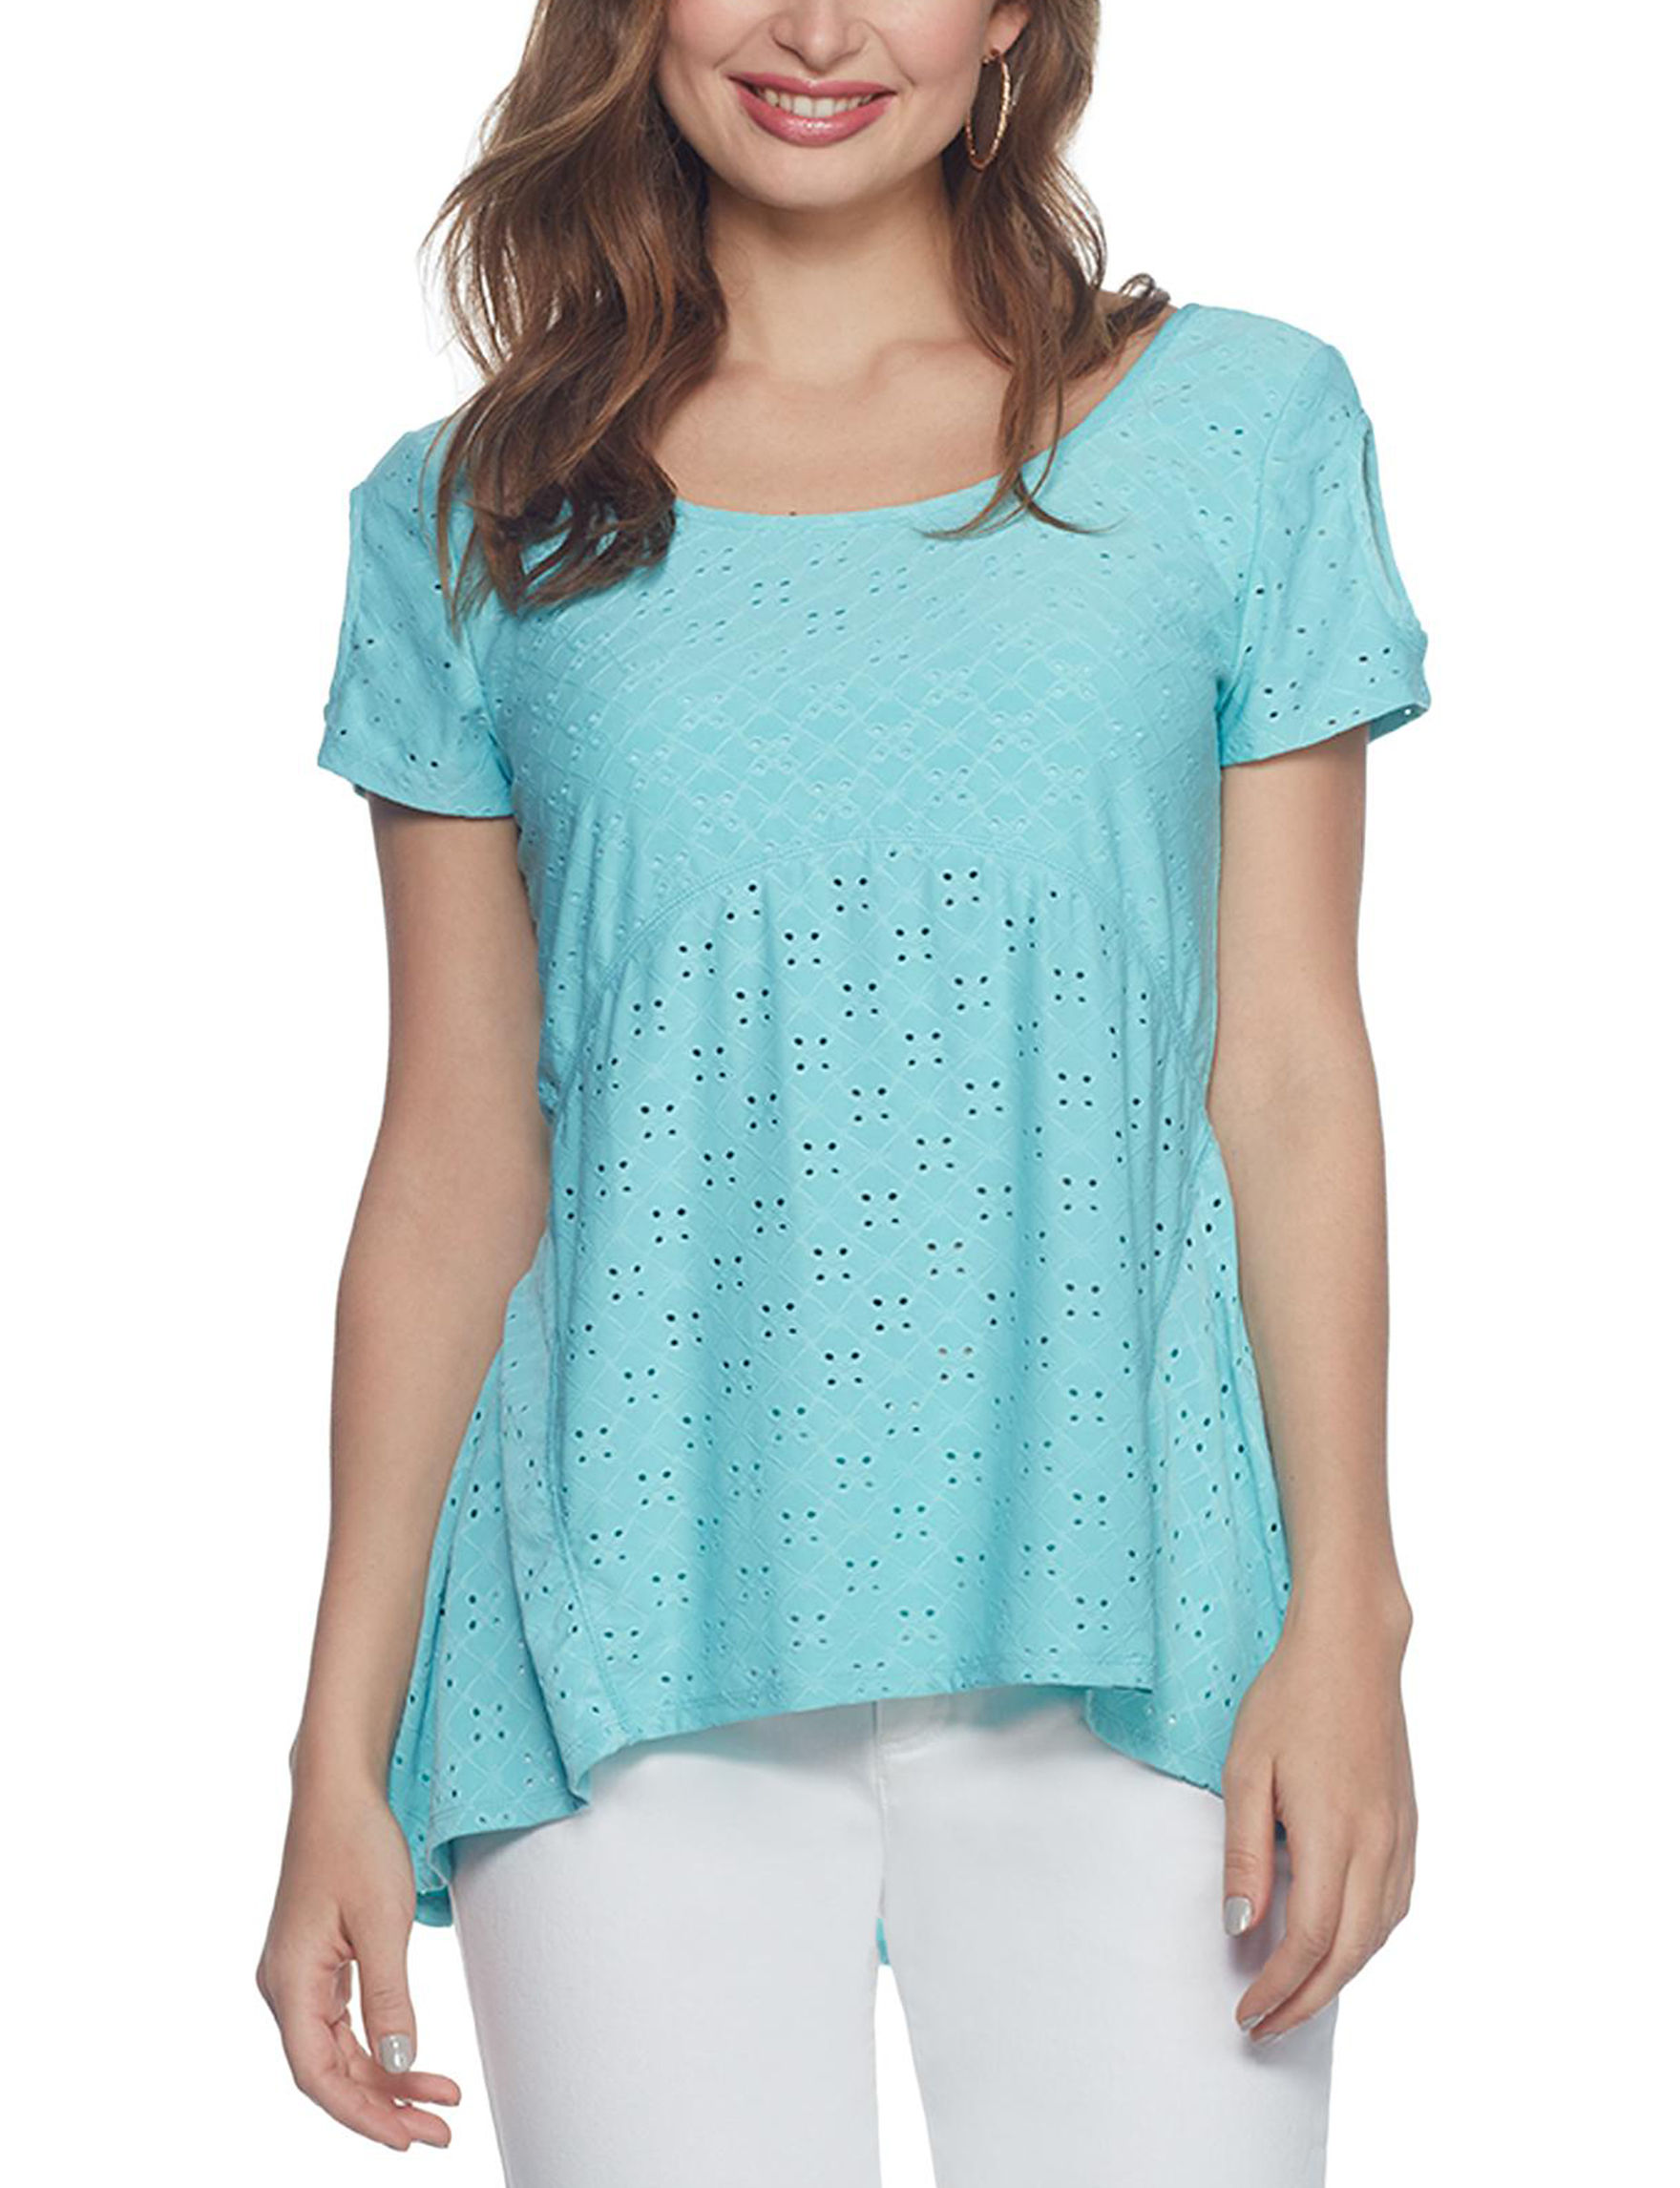 Skyes The Limit Blue Shirts & Blouses